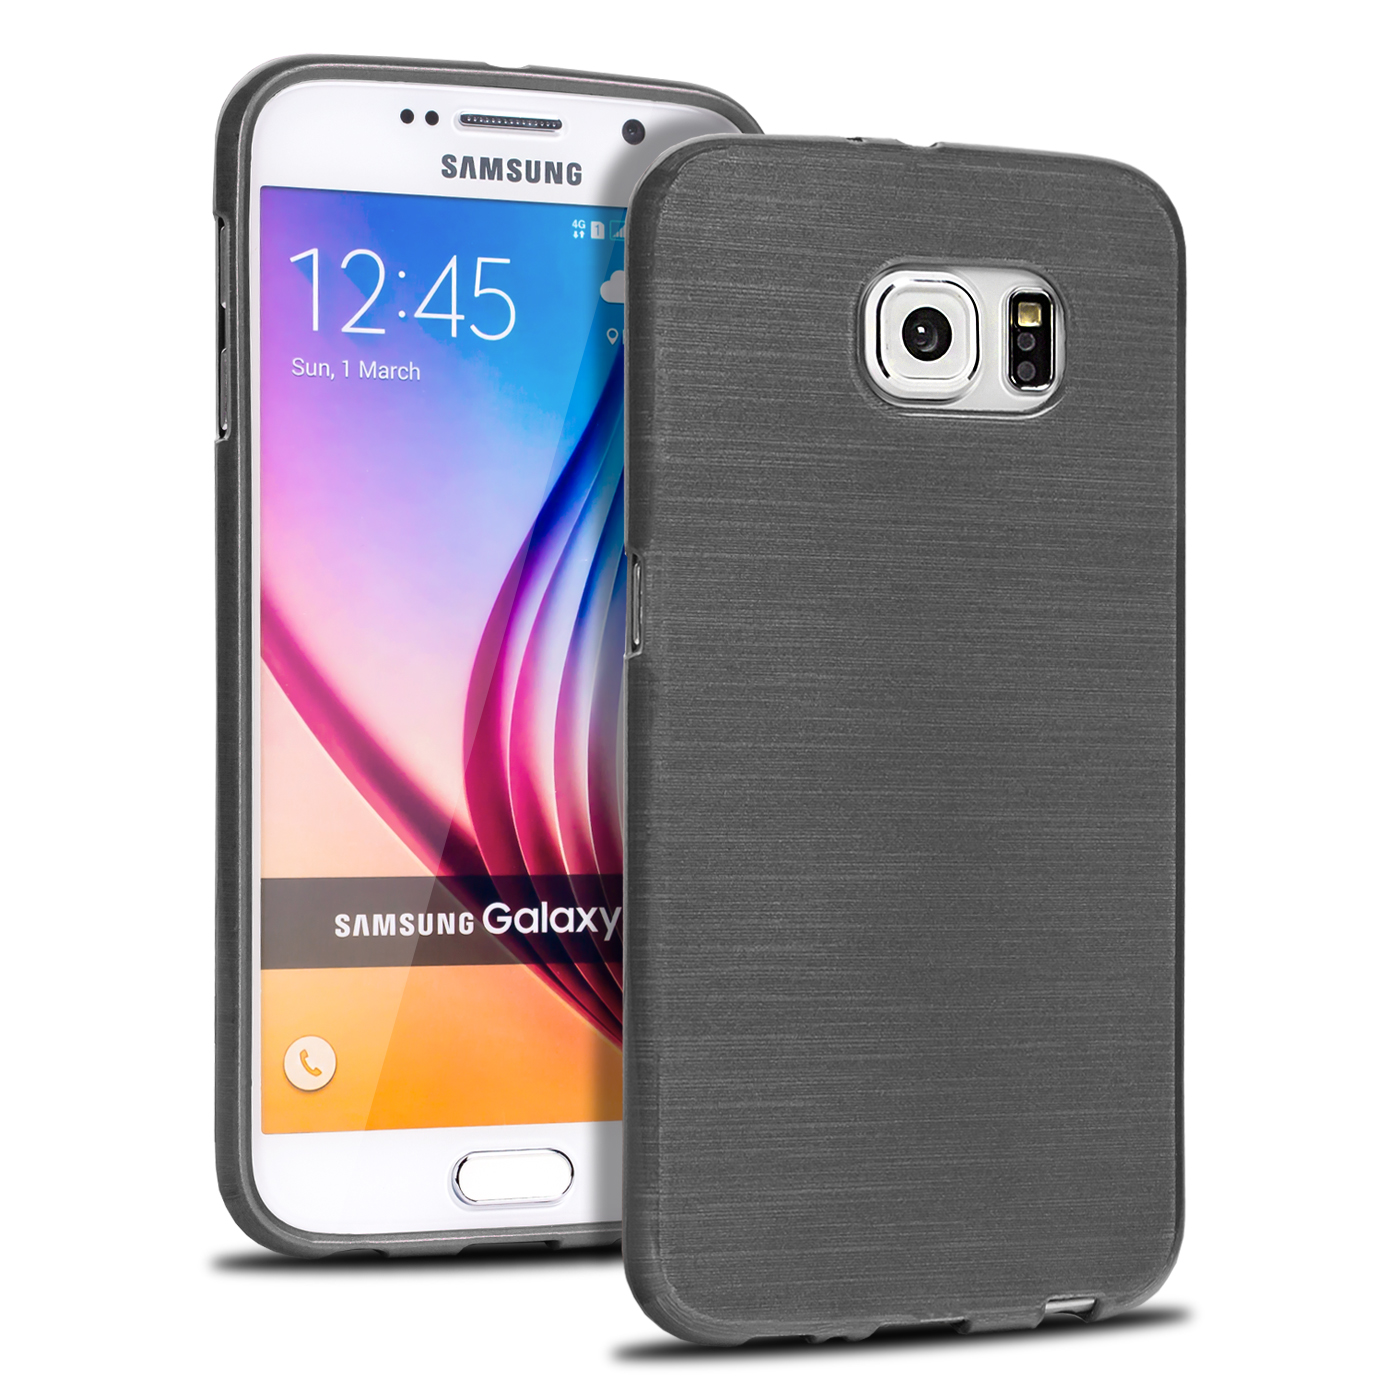 brushed case f r samsung galaxy serie schutz h lle silikon handy tasche tpu d nn ebay. Black Bedroom Furniture Sets. Home Design Ideas